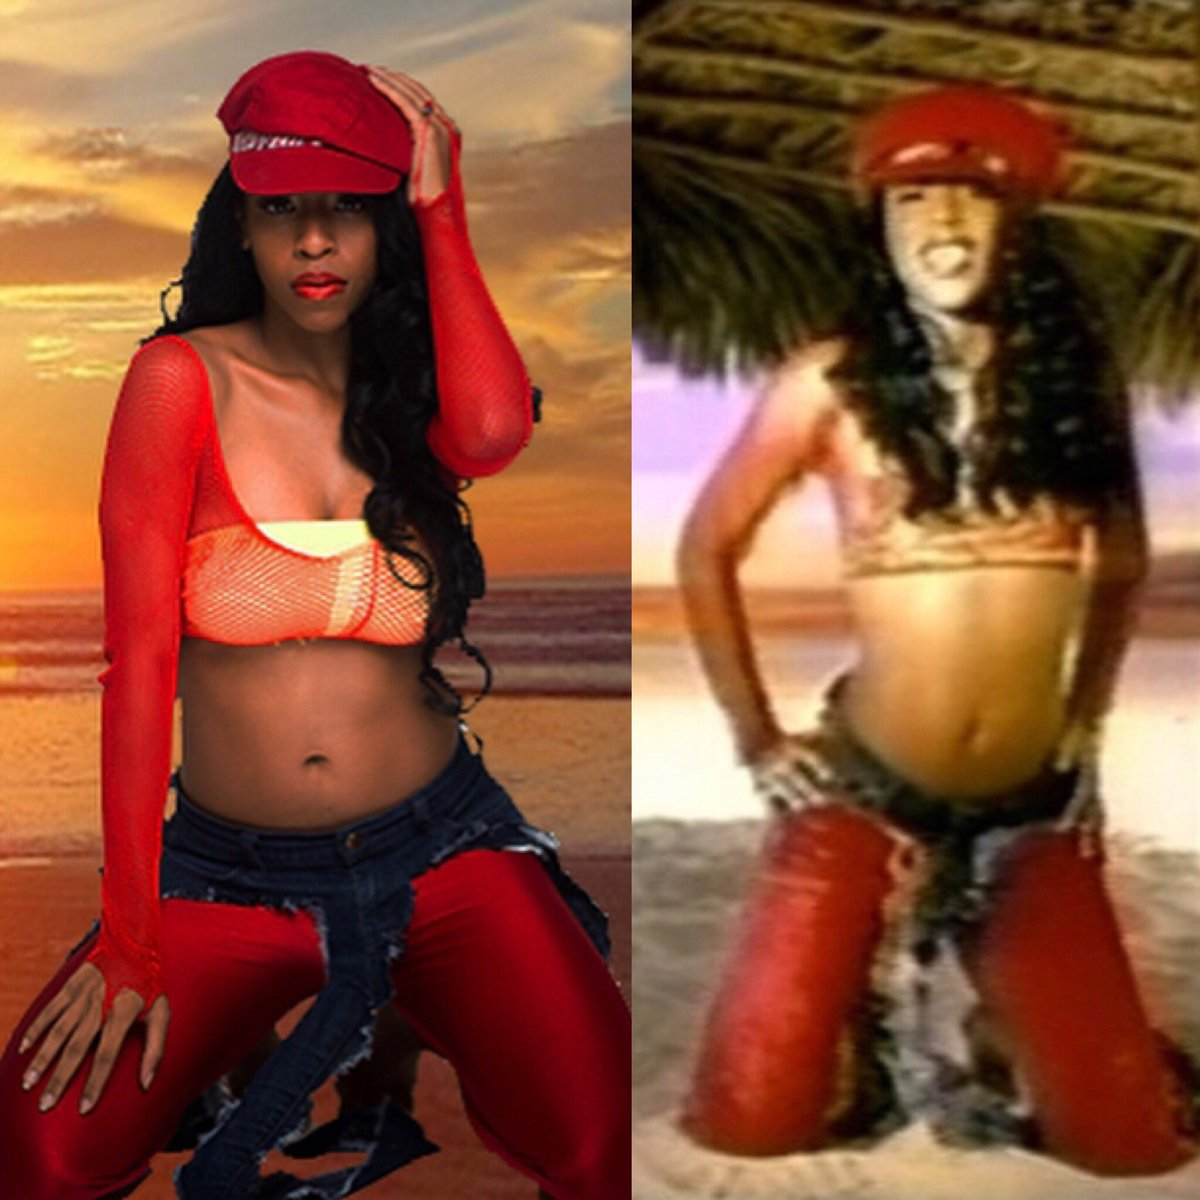 Aaliyah For Mac On Twitter Aaliyah Fan Butwhoisshe S Amazing Rock The Boat Halloween Costume Remember To Enter The Official App Aaliyah Halloween Giveaway Over On The App Aaliyahapp